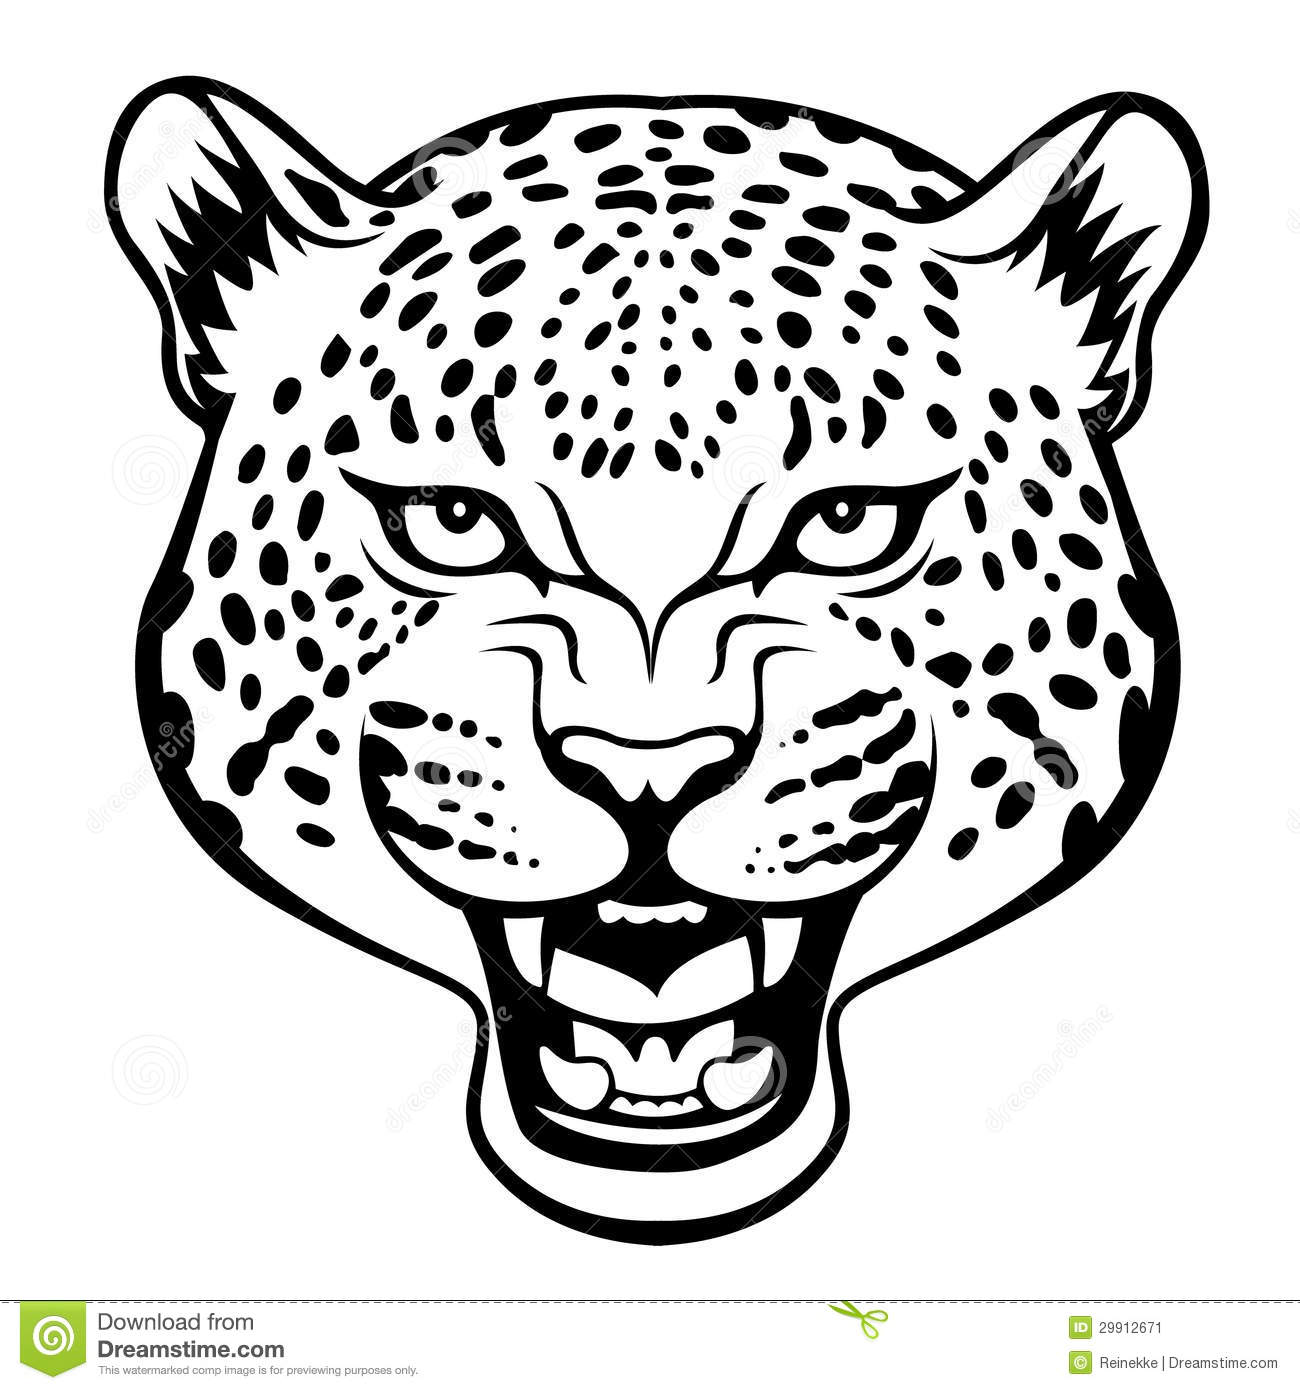 Stylized agressive leopard head black illustration.